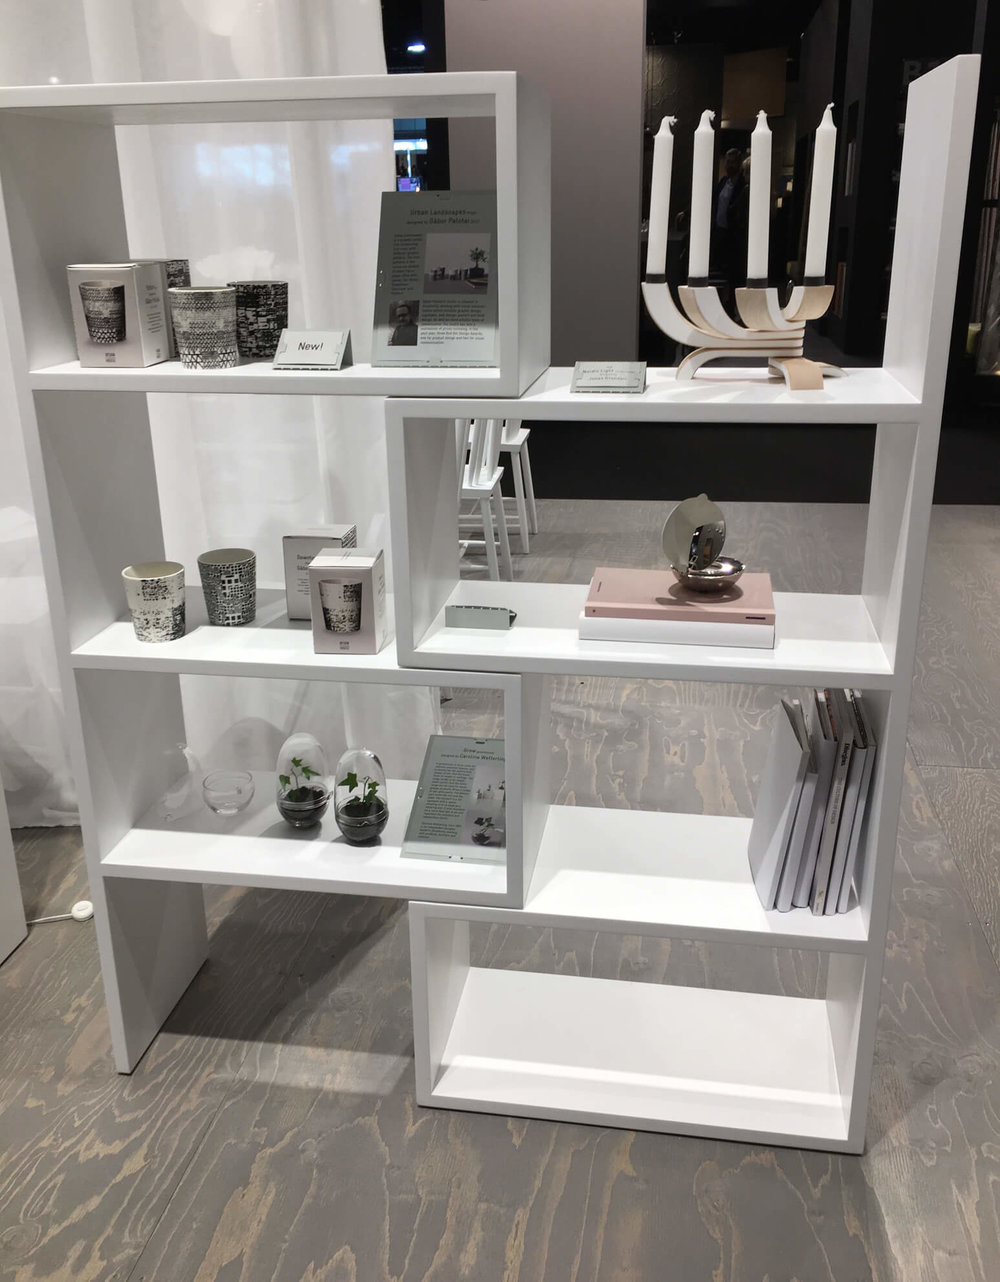 Extend Shelf, Design House Stockholm